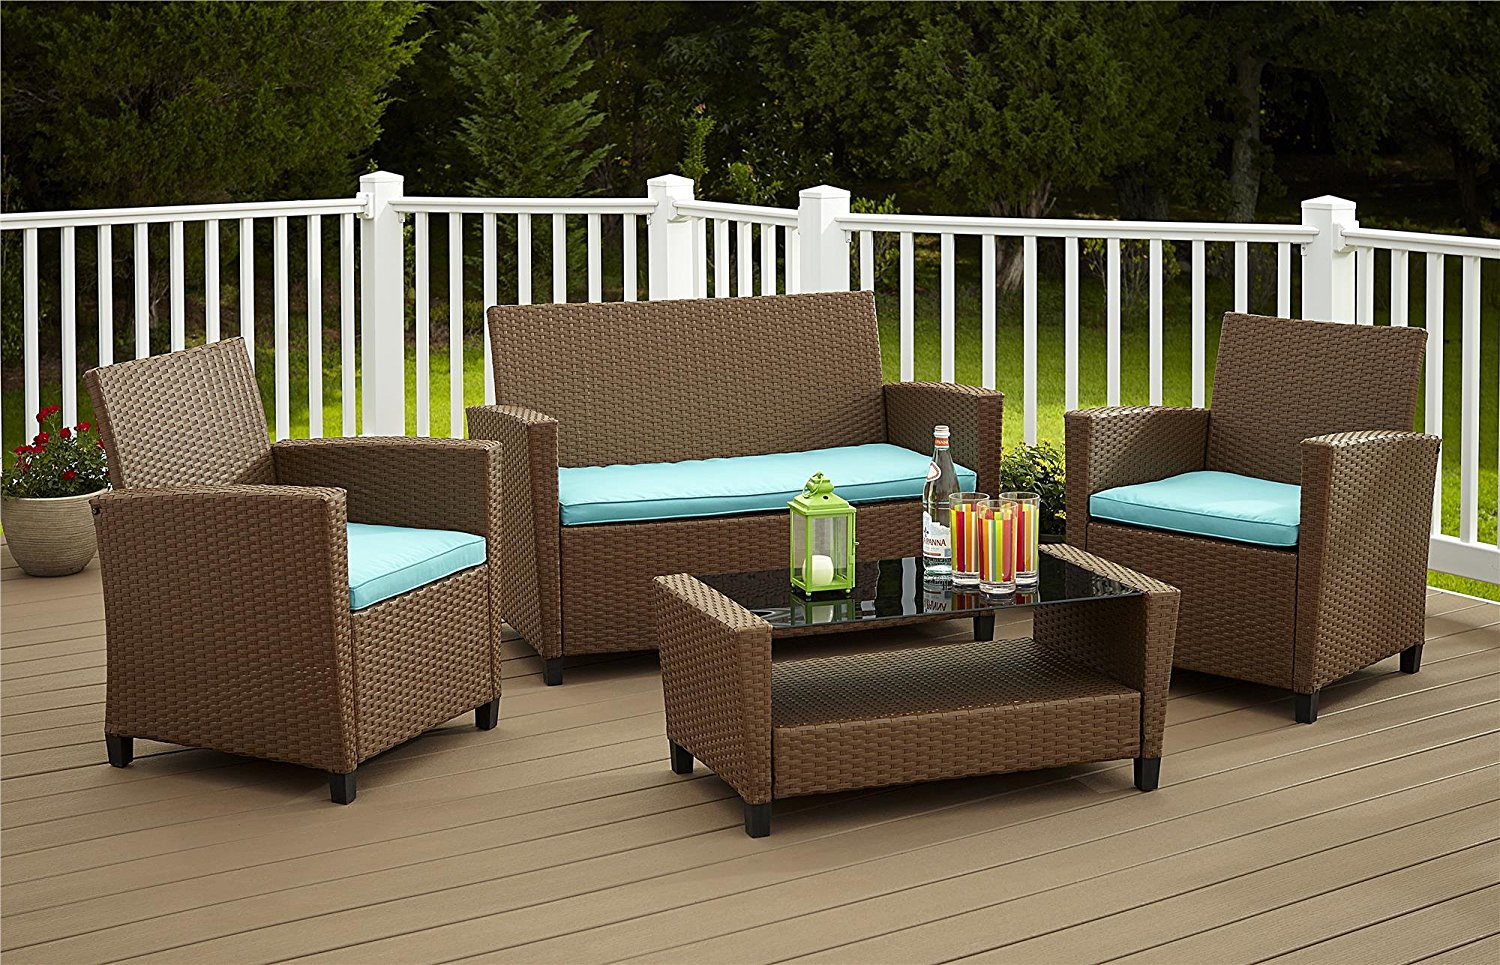 Best ideas about Patio Furniture Deals . Save or Pin Cosco Products Piece Malmo Resin Wicker Patio Set Outdoor Now.